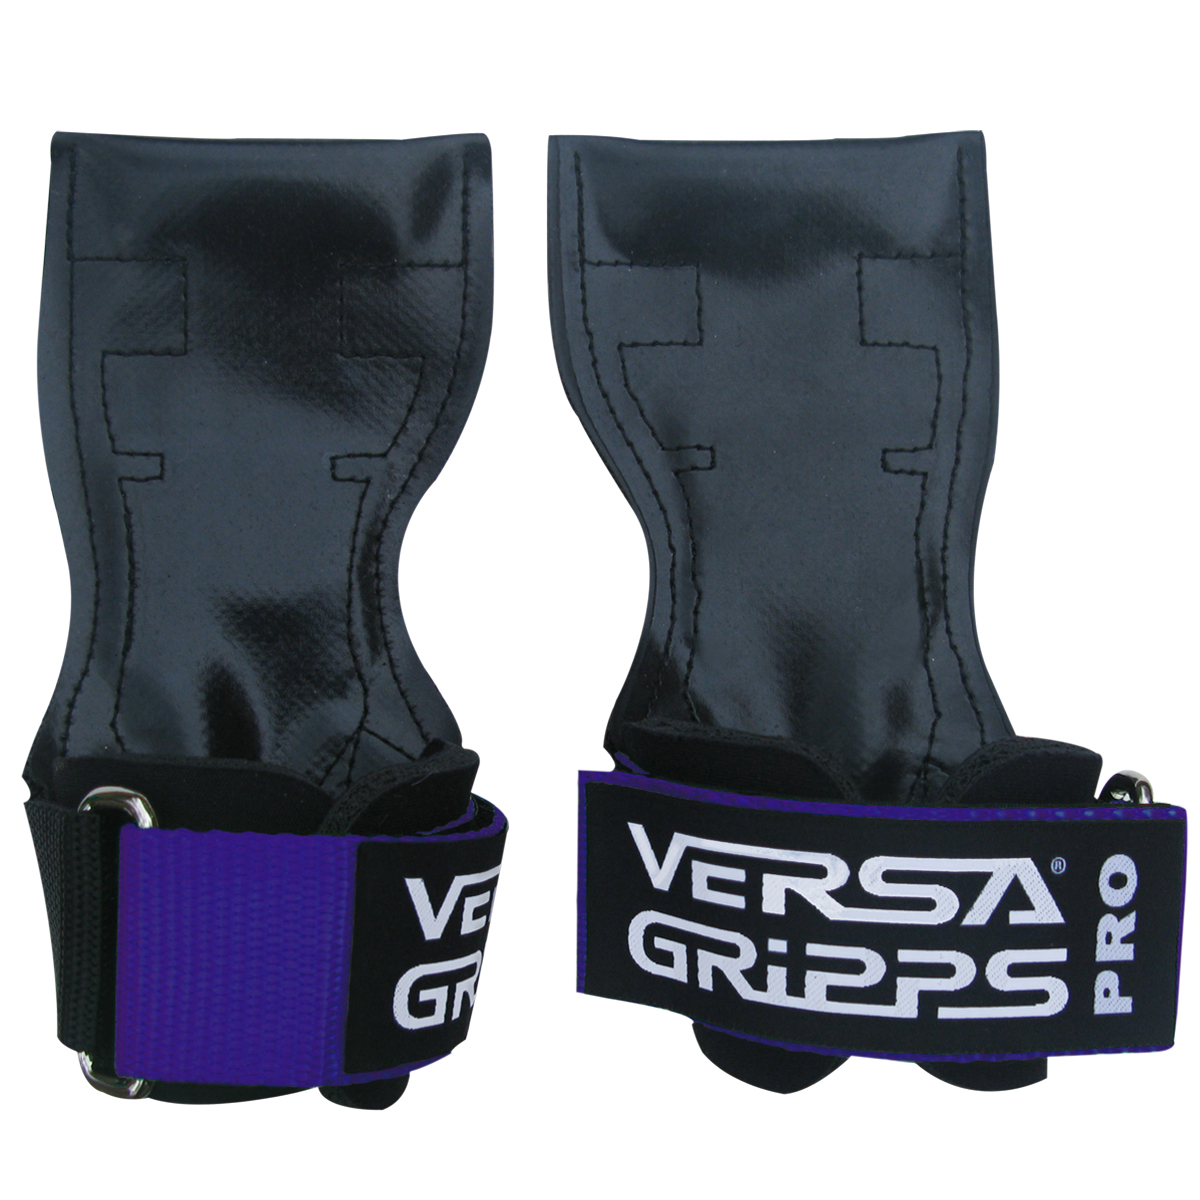 VERSA GRIPPS PRO The Best Training Accessory in the World...